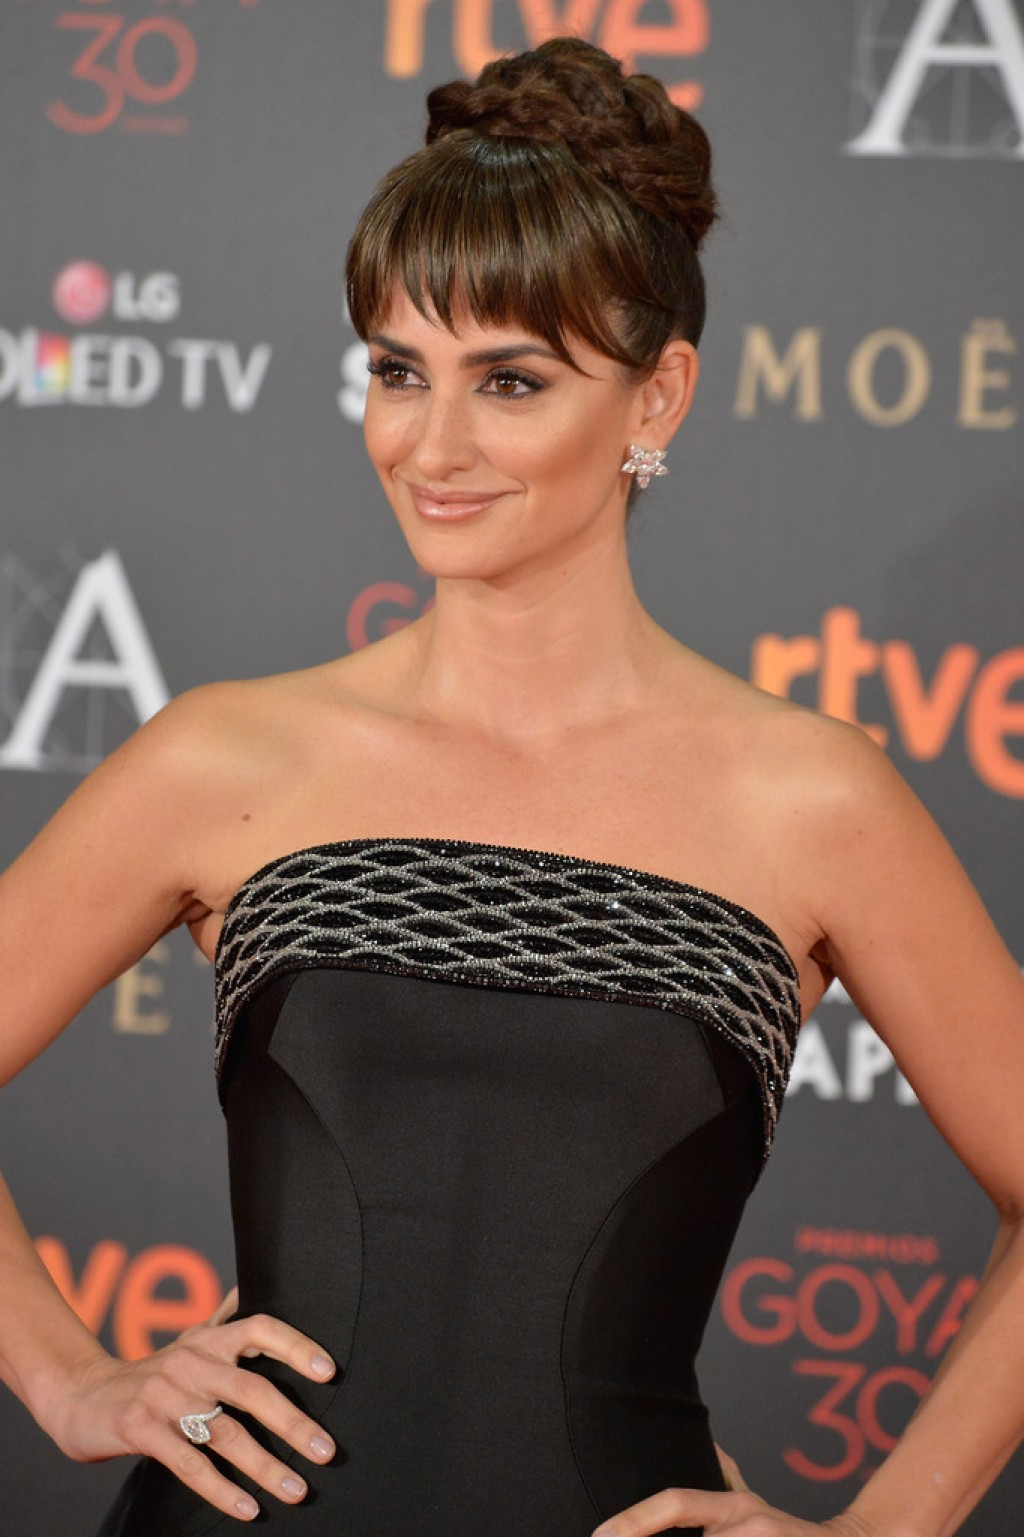 Goya-Cinema-Awards-Penelope-Cruz-2016-1024x1537-2